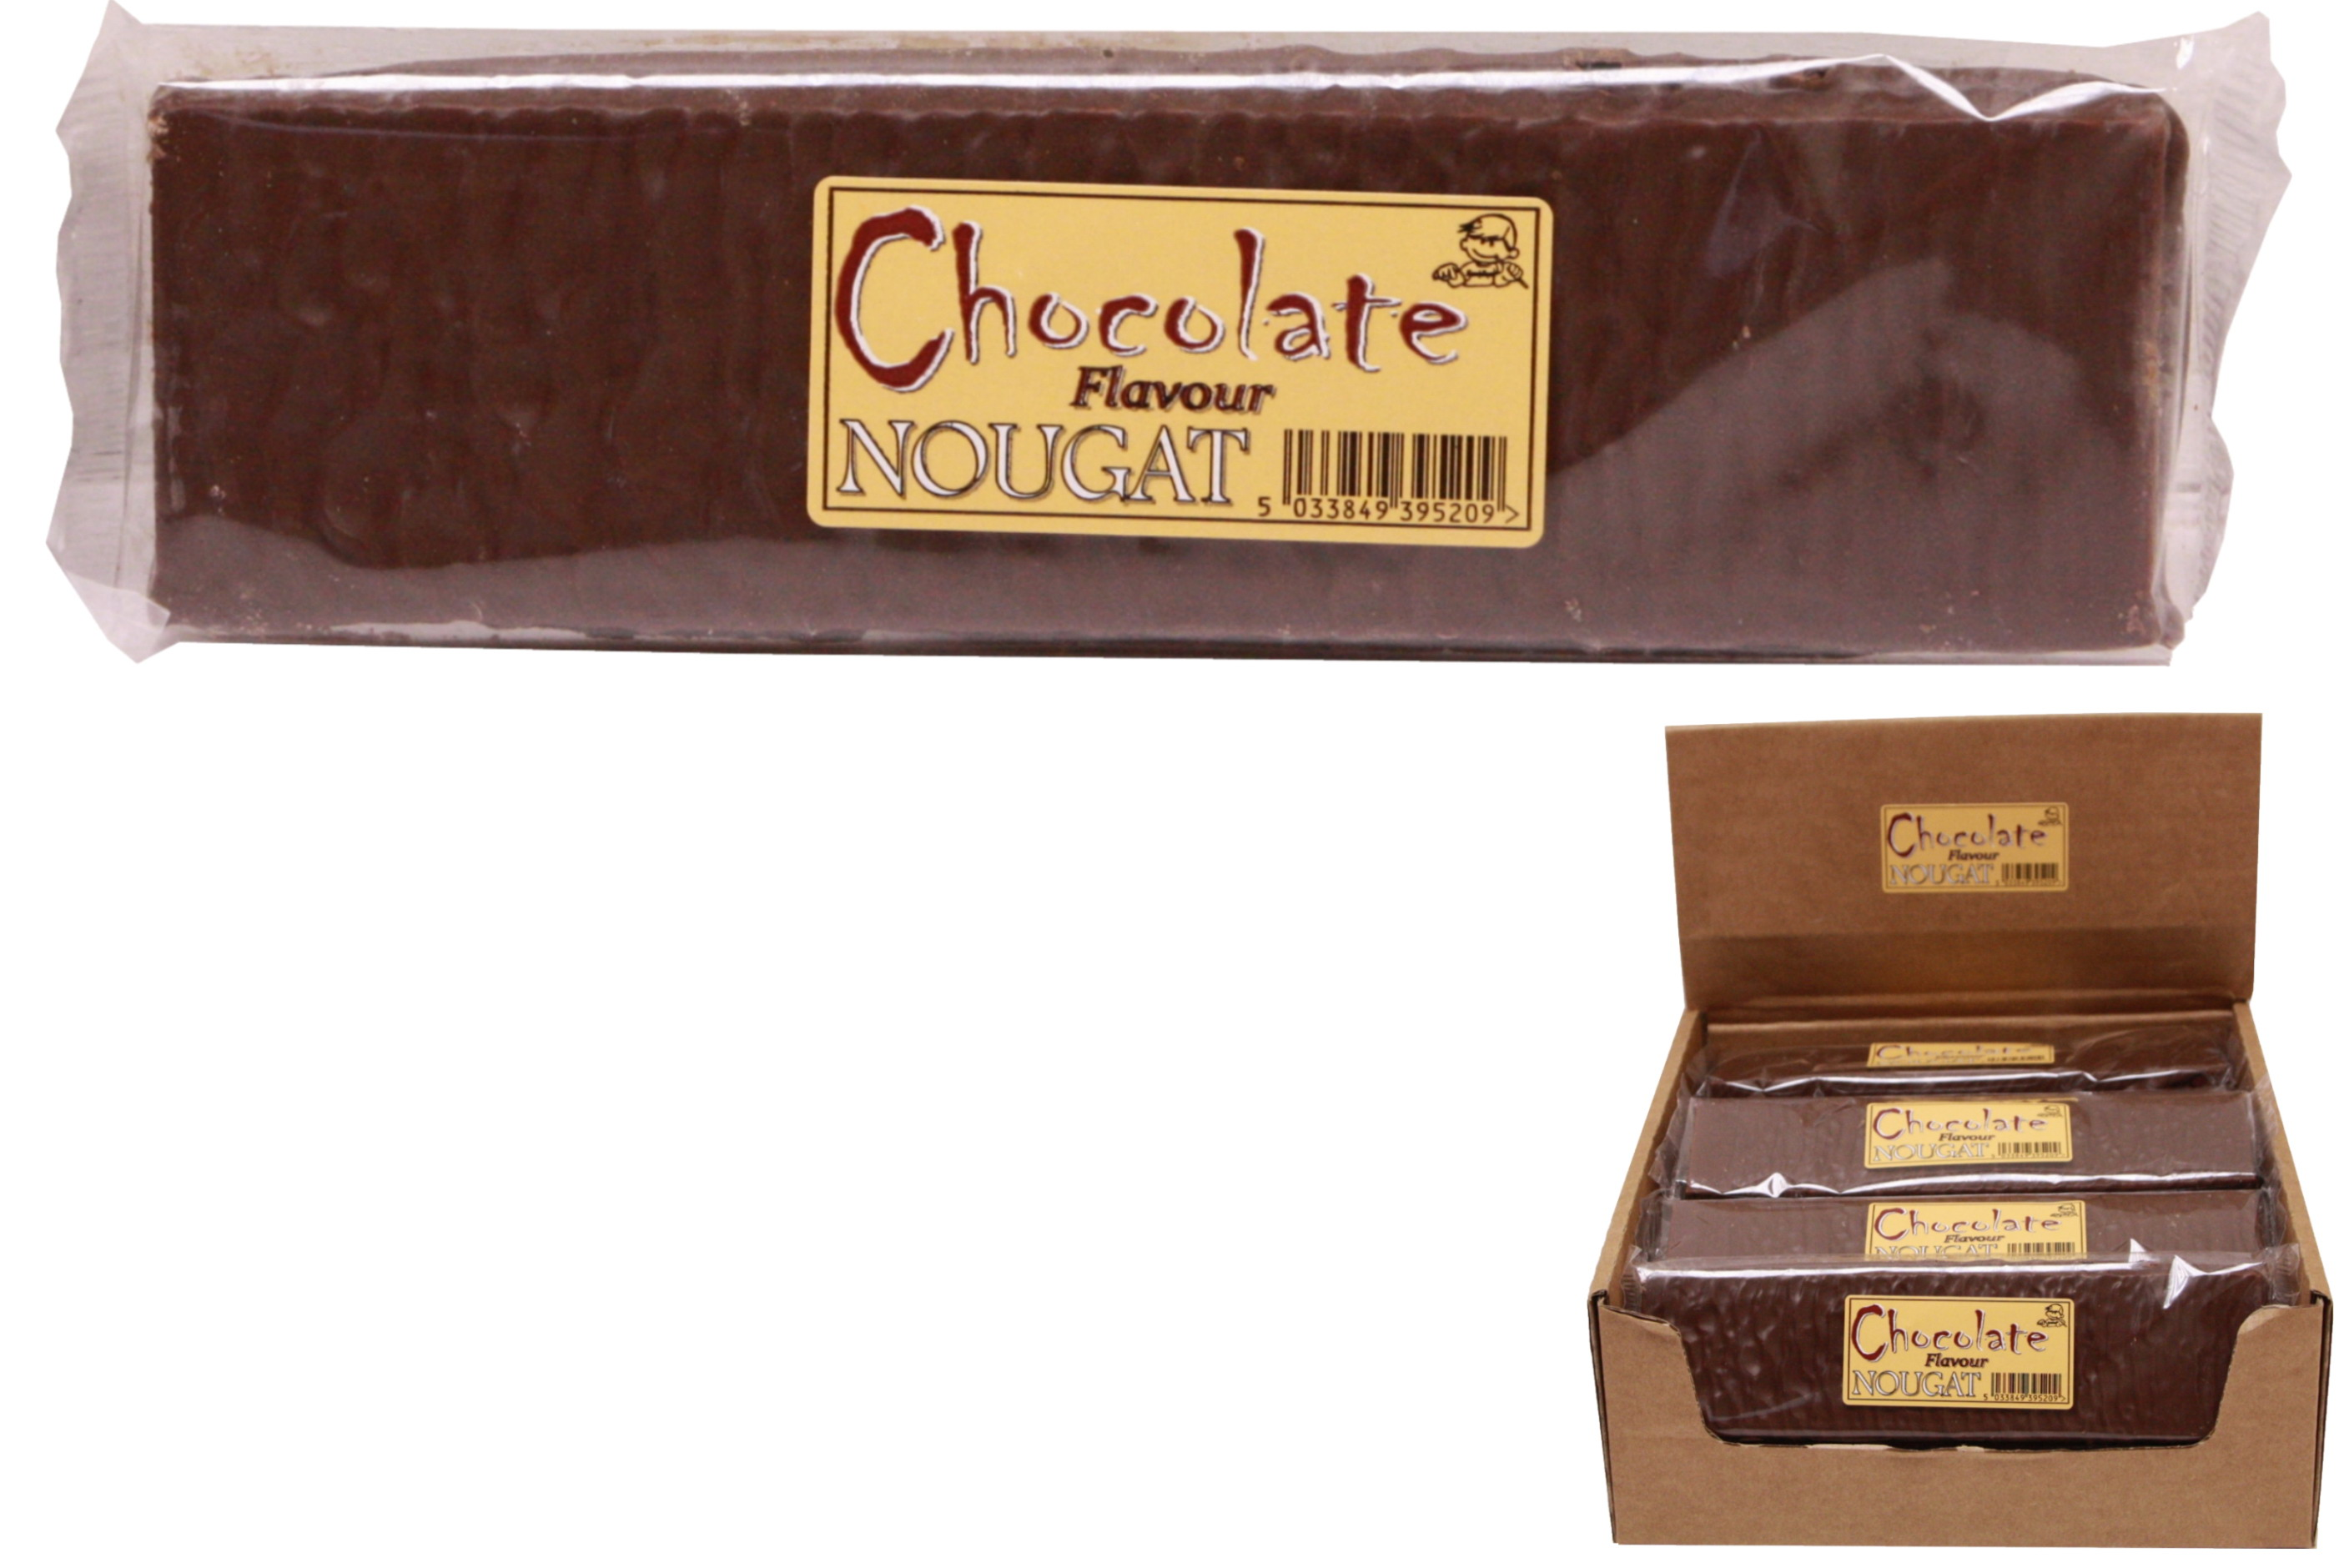 130g Chocolate Flavour Covered Nougat Bar